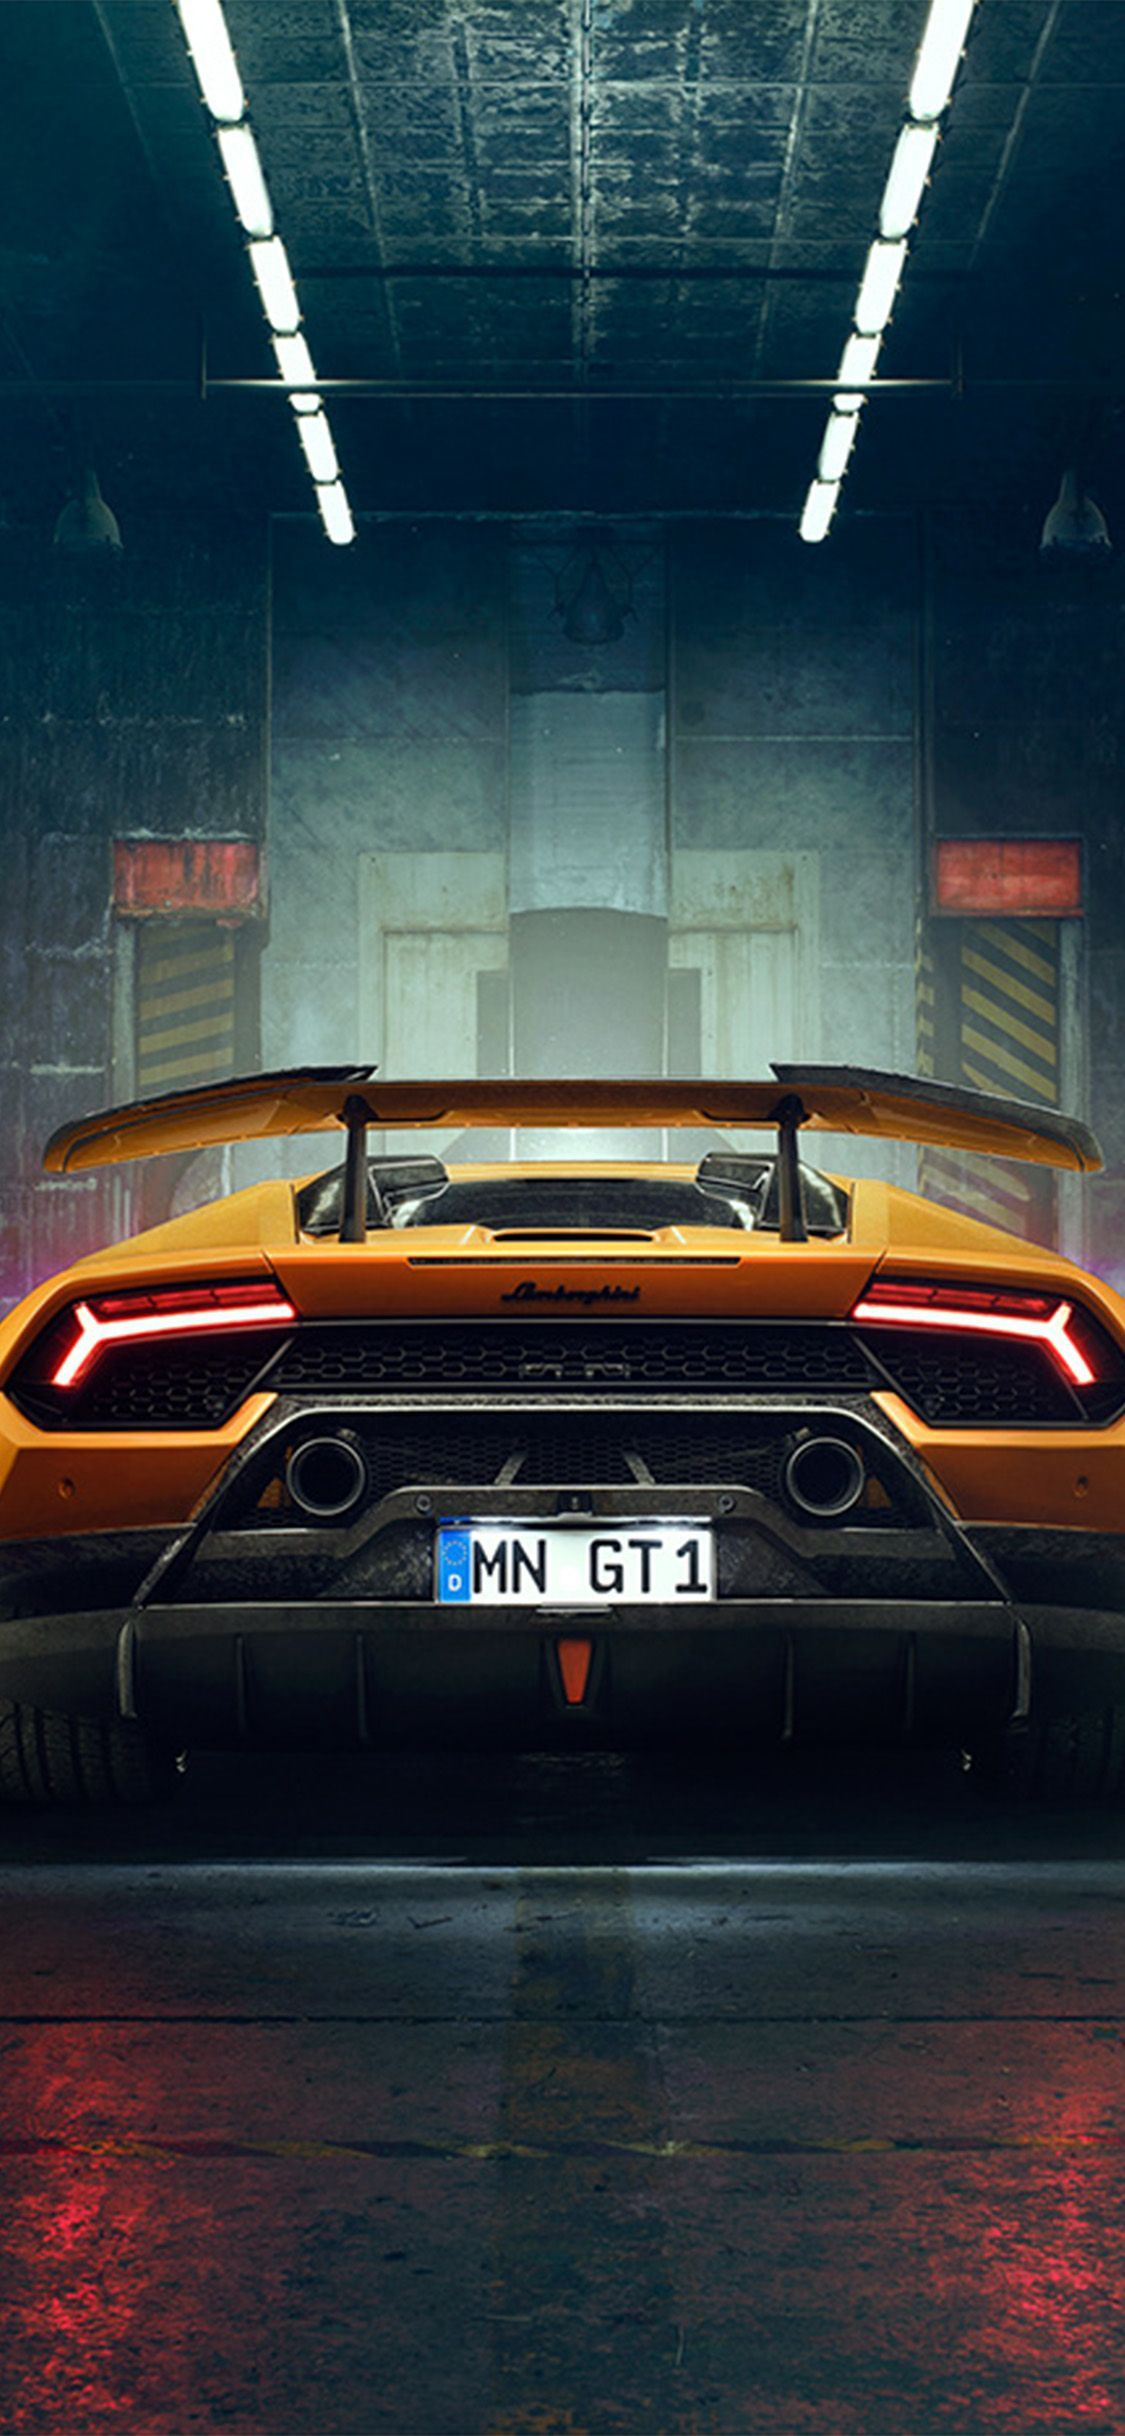 Sports Cars That Start With M Luxury And Expensive Cars